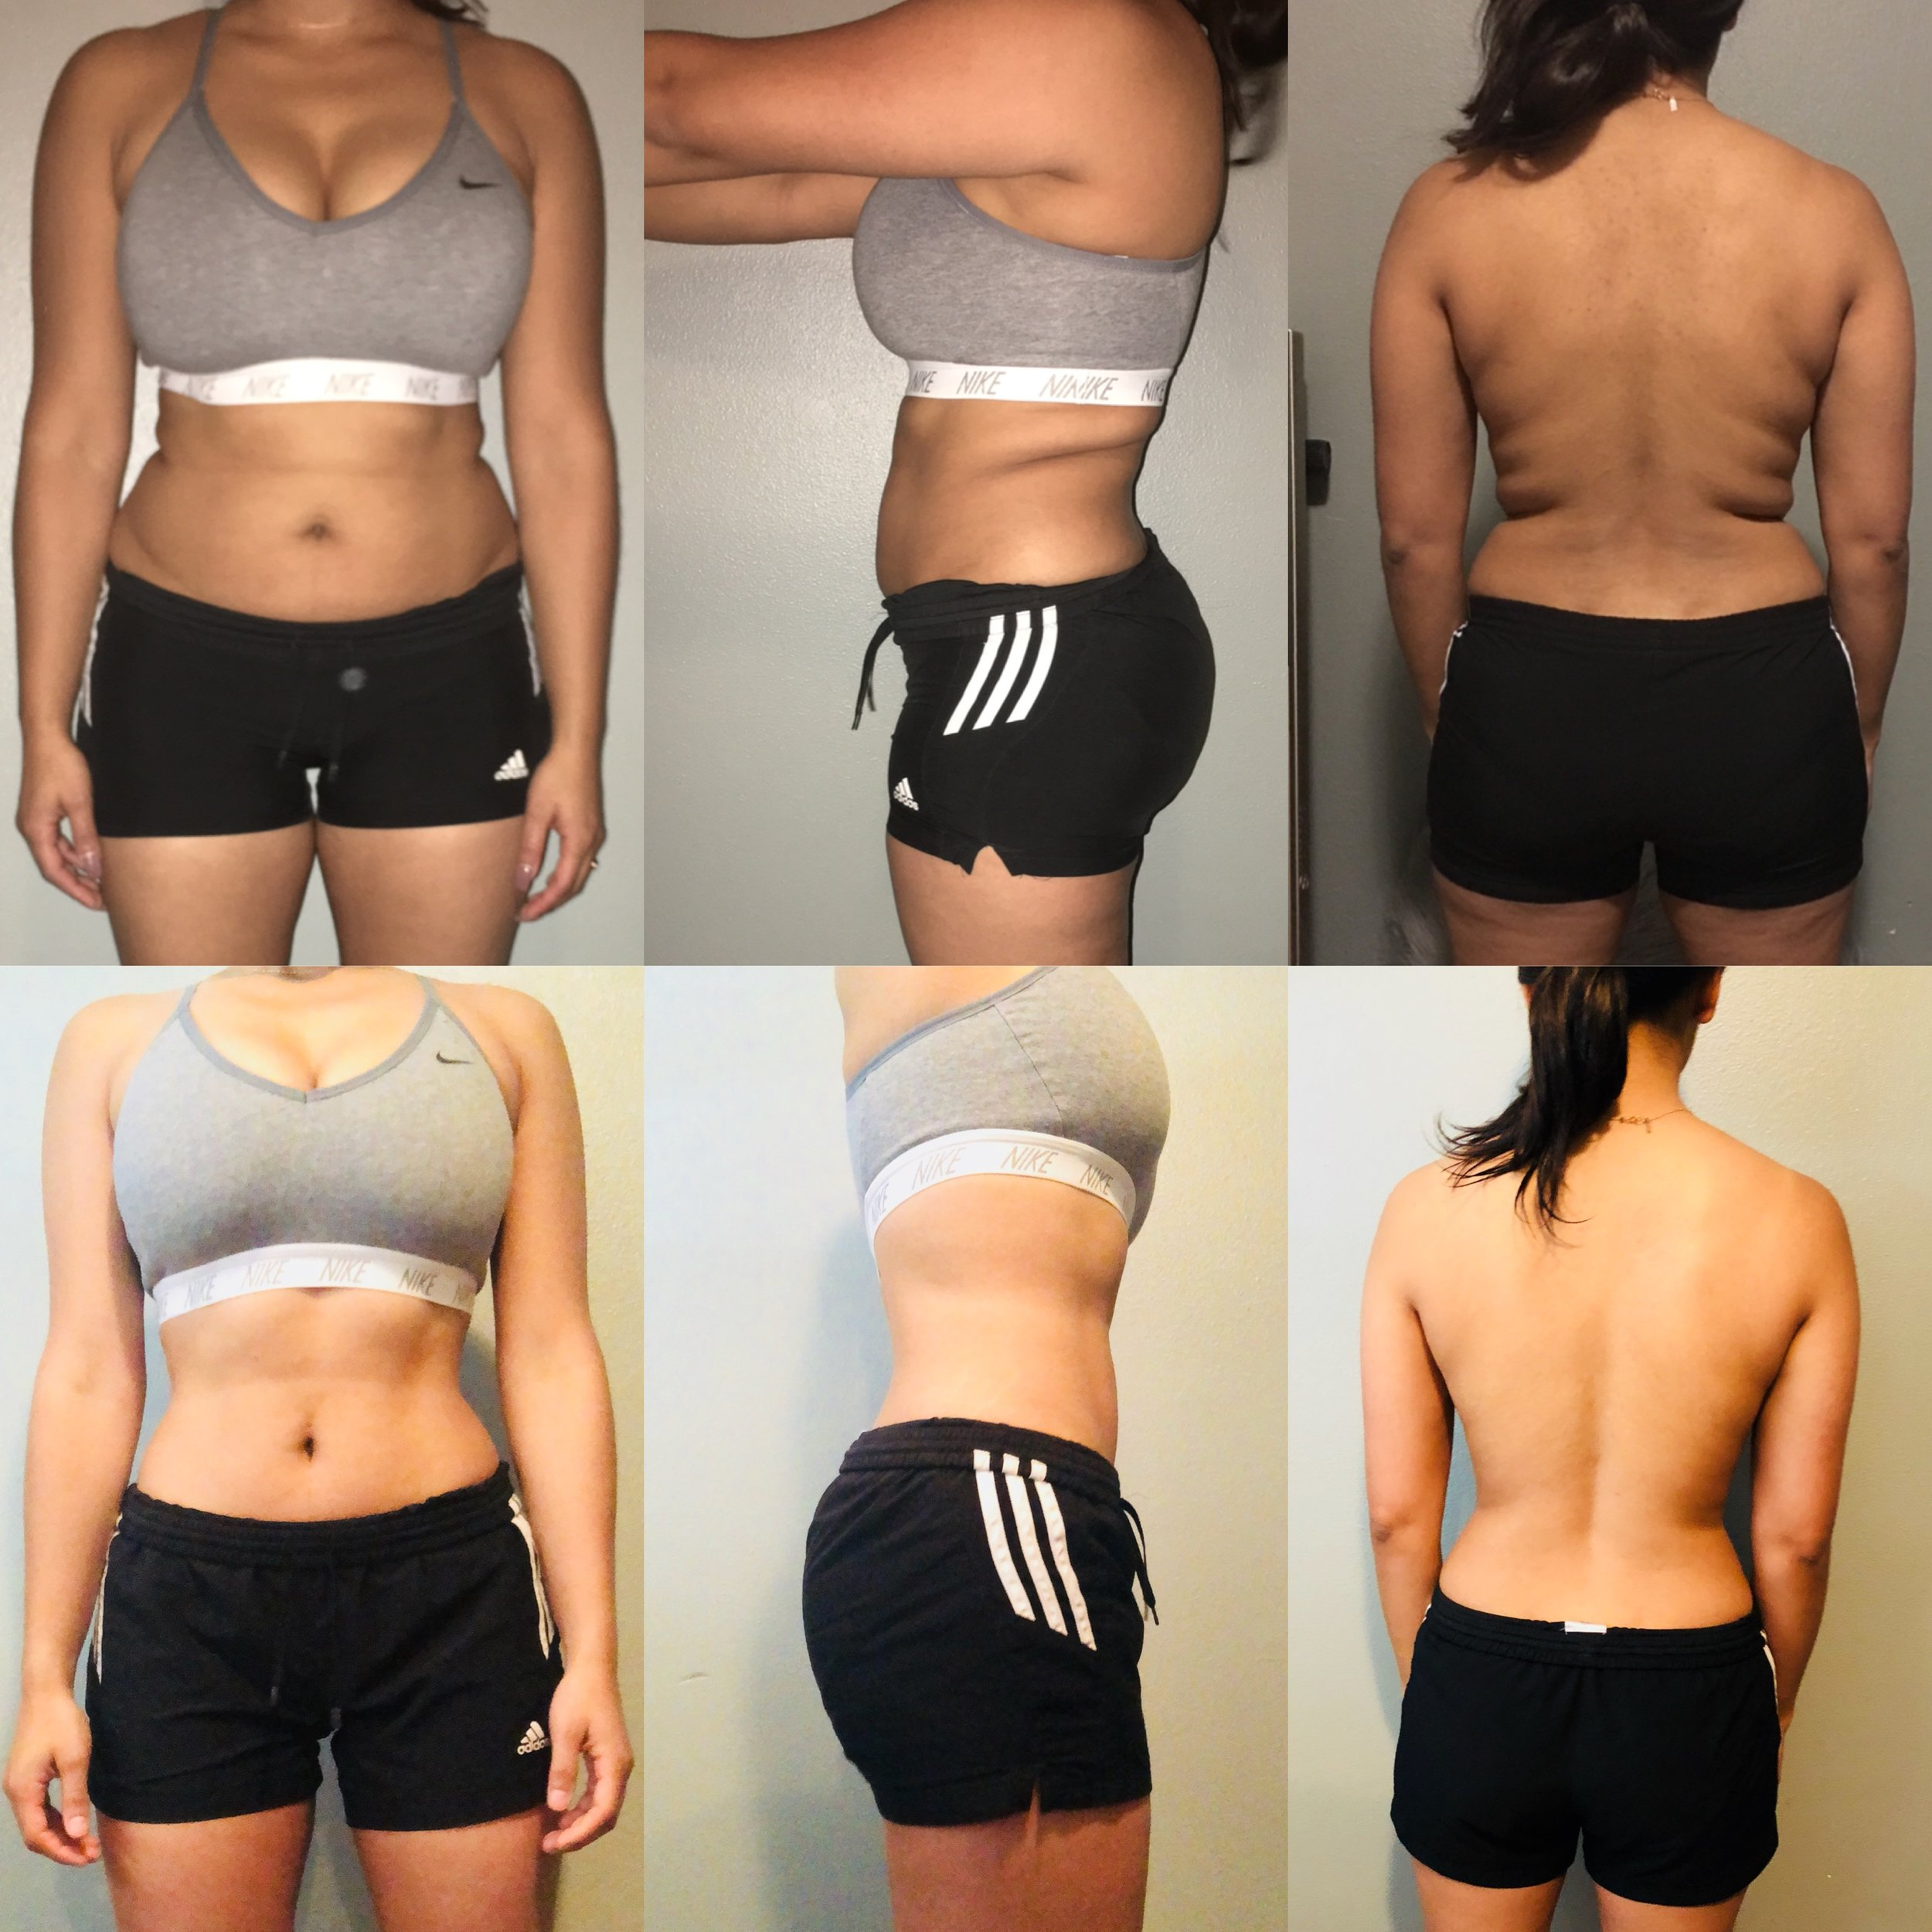 3 Month Dieting - I've know Hefci for many years, so I was happy when she reached out to me for help with her diet. She had a bad history of eating junk food, hot cheetos, pizza, tacos. I put her on a strict diet program and she dropped weight fast.